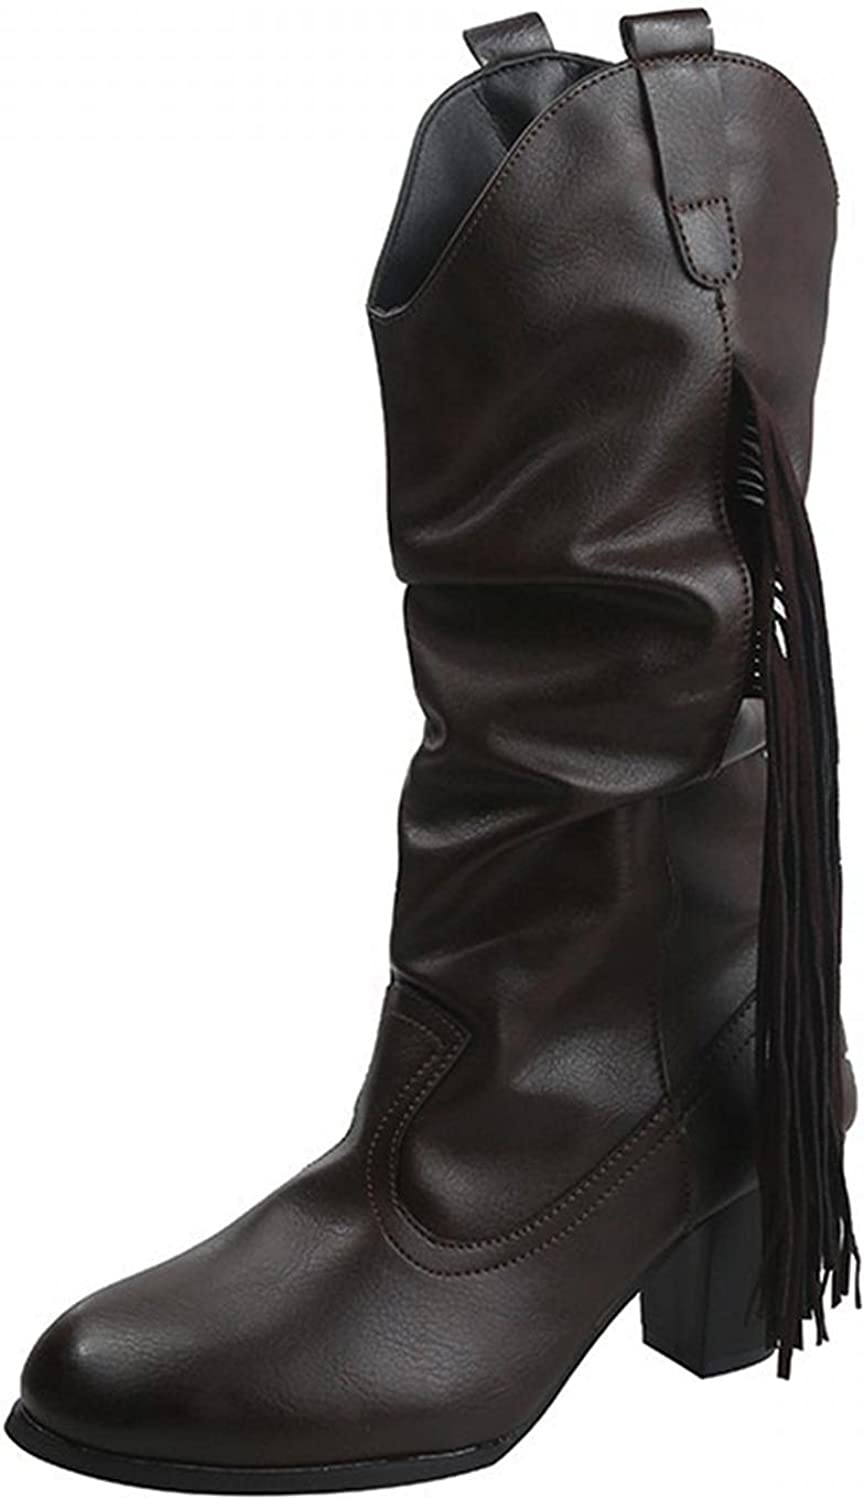 KAIGE Boots for Women cheap Tassel Fashion Ankle New arrival Eth Pointed Toe